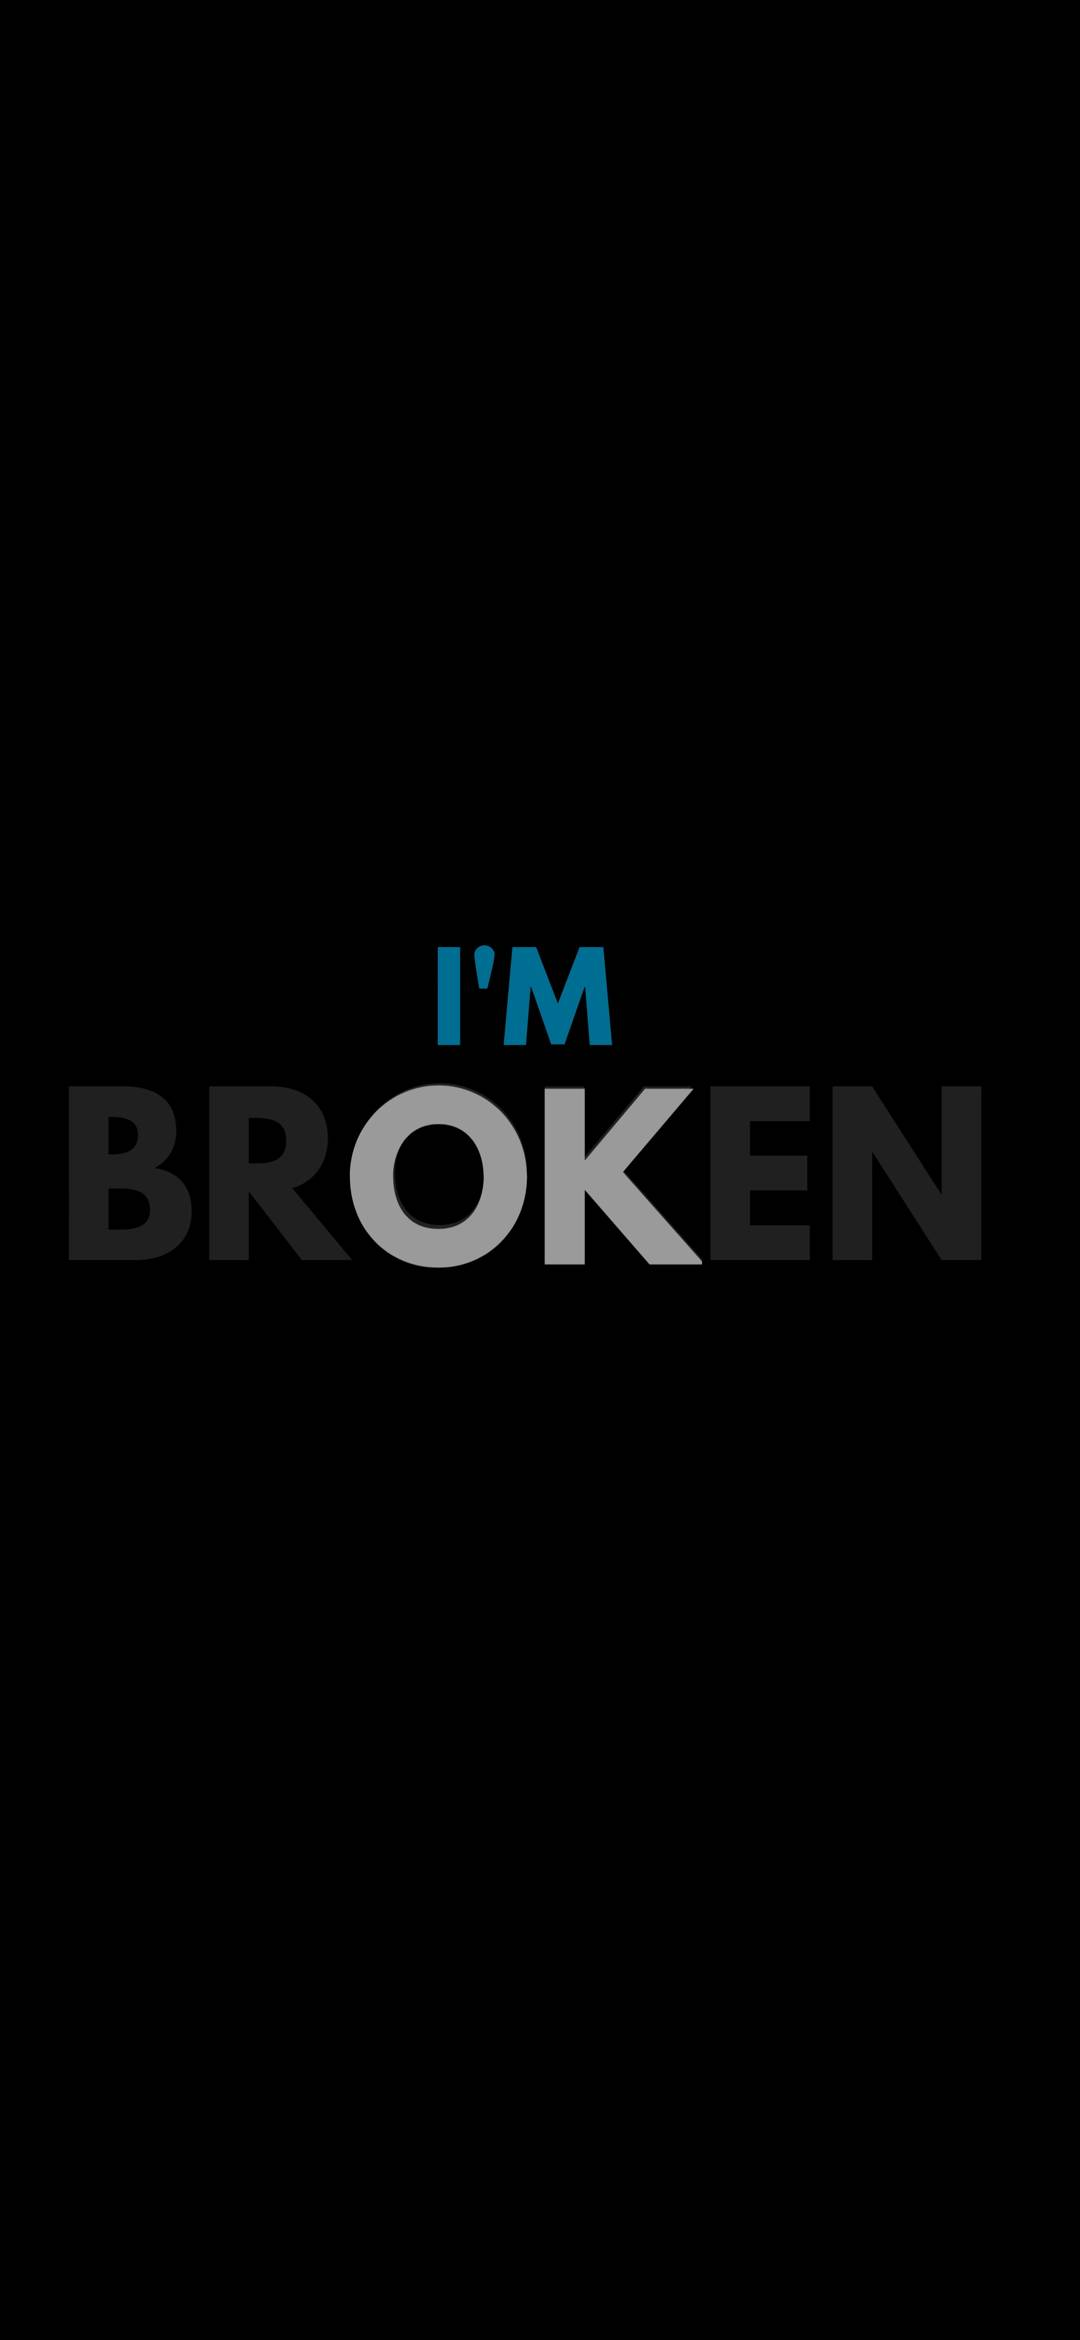 Broken Heart Wallpaper 1080x2340